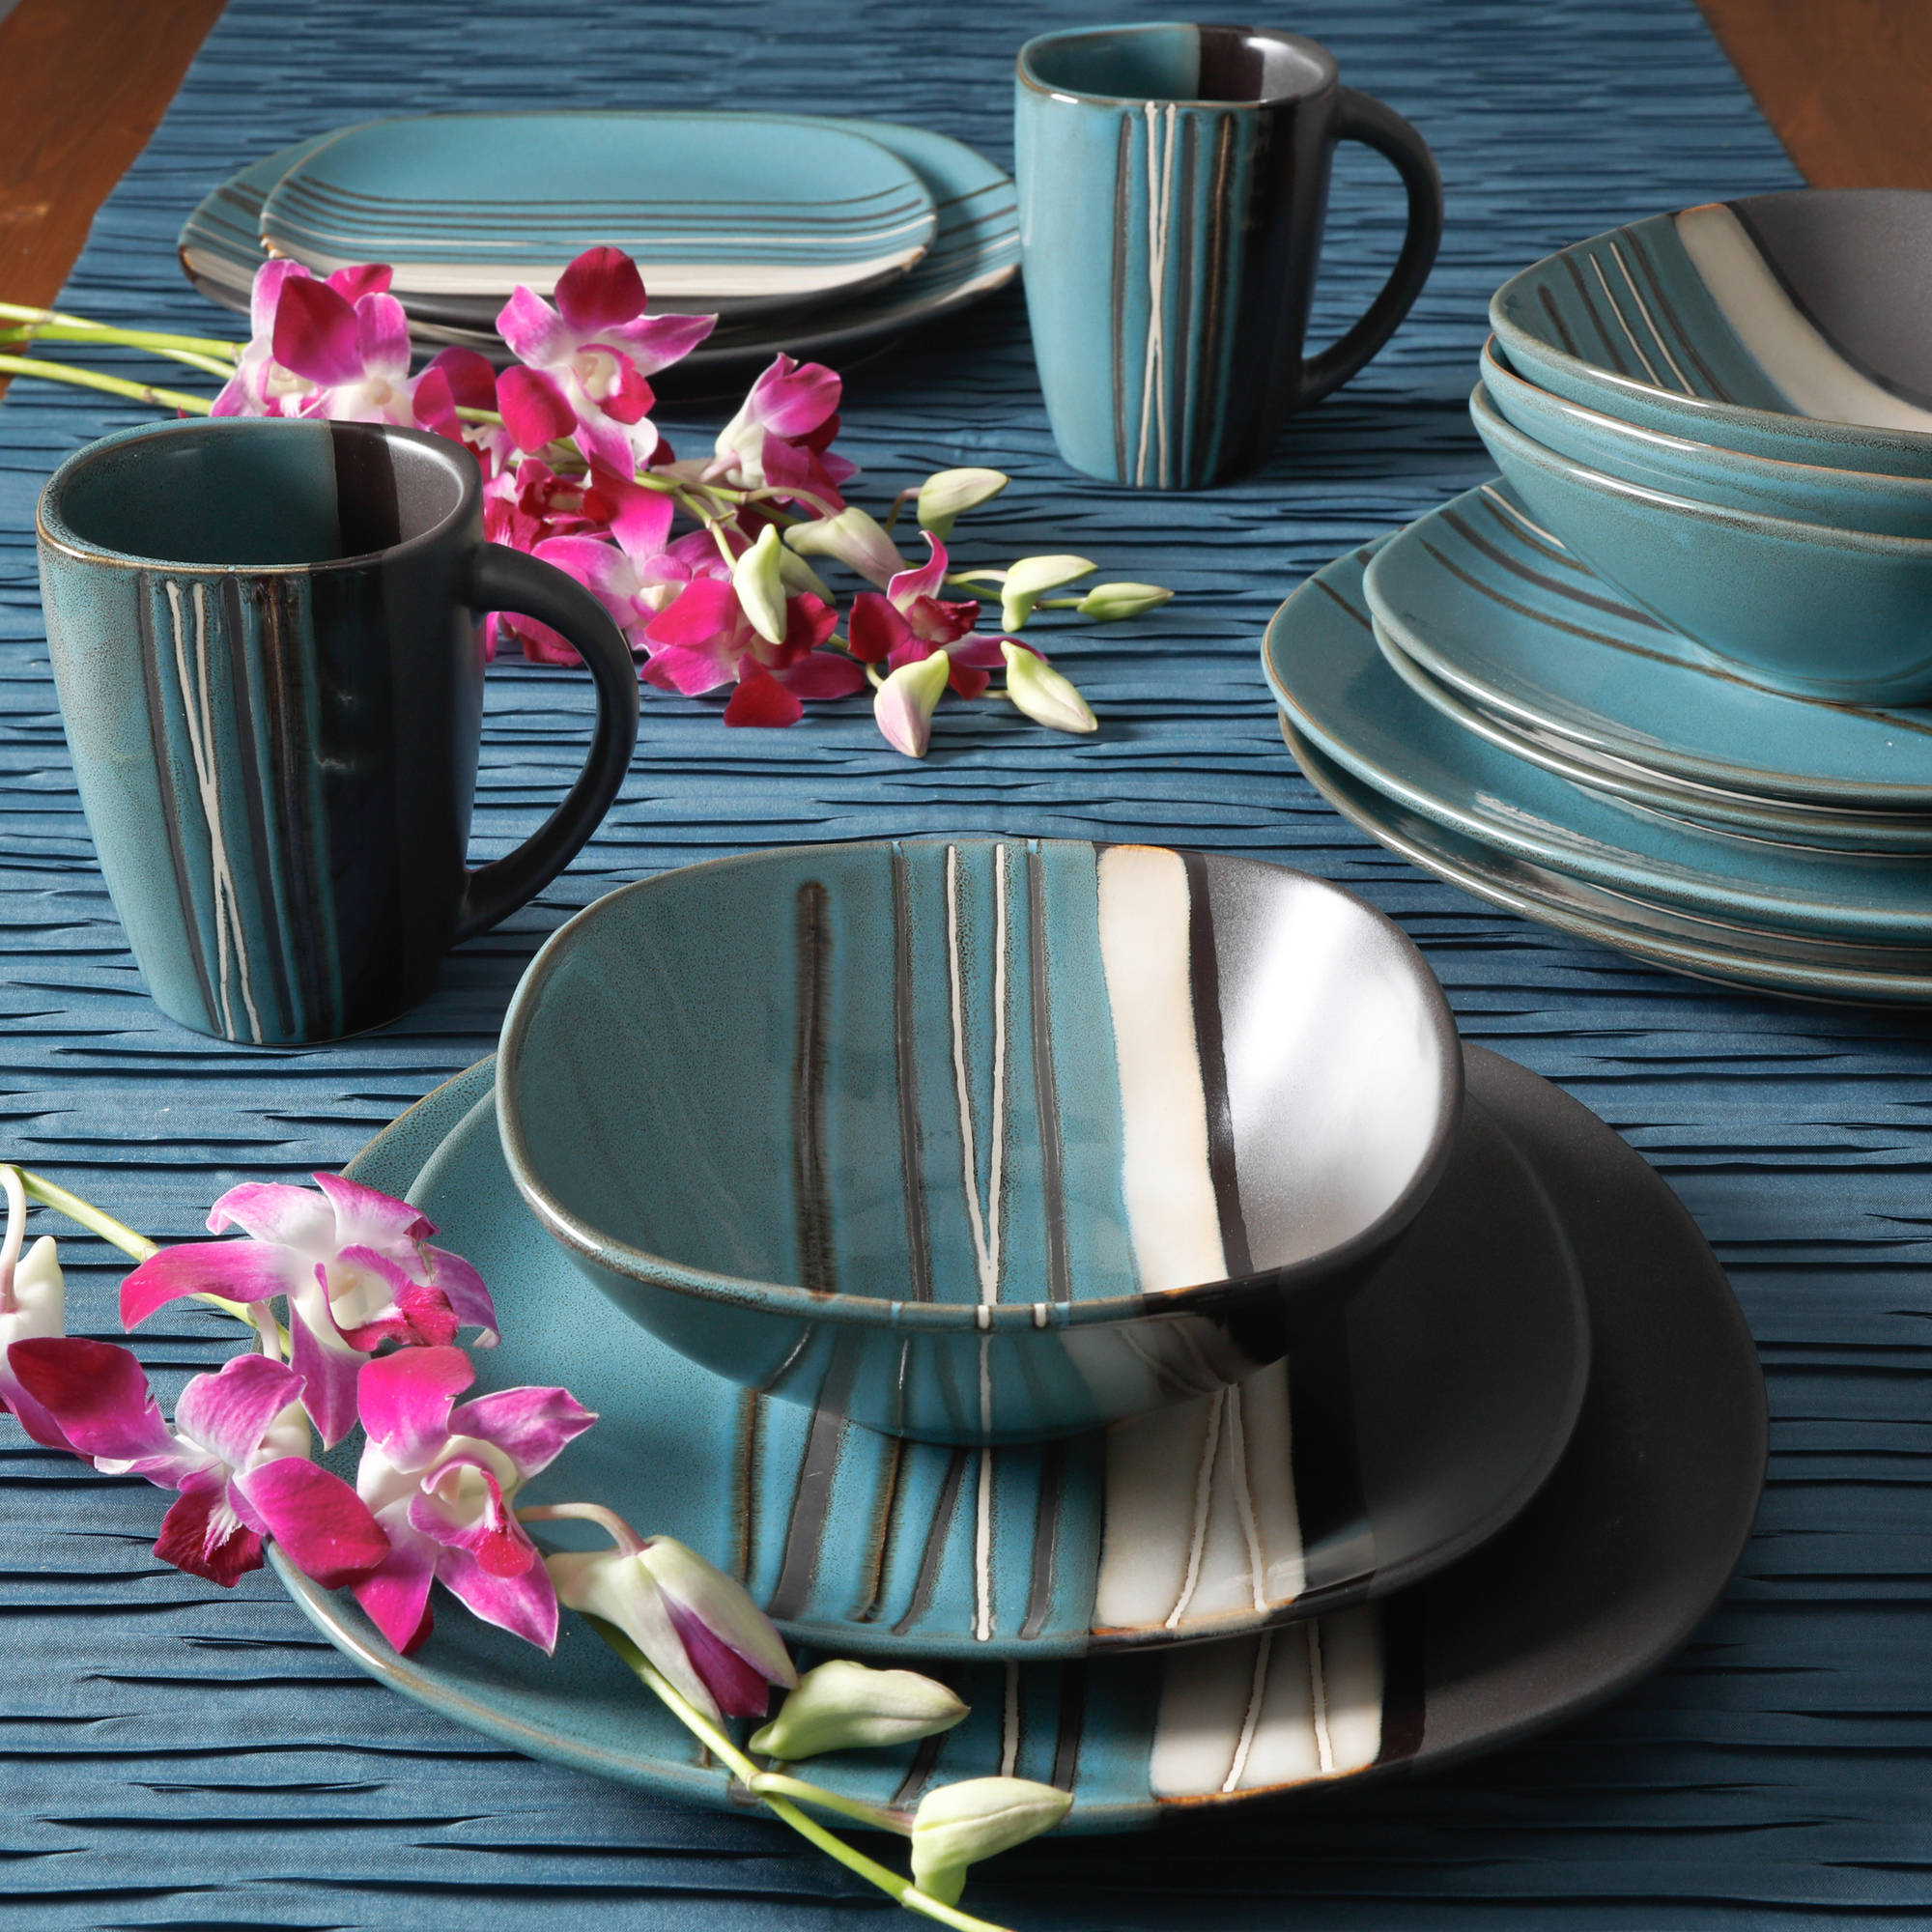 & Better Homes u0026 Gardens Bazaar 16-Piece Dinnerware Set - Walmart.com